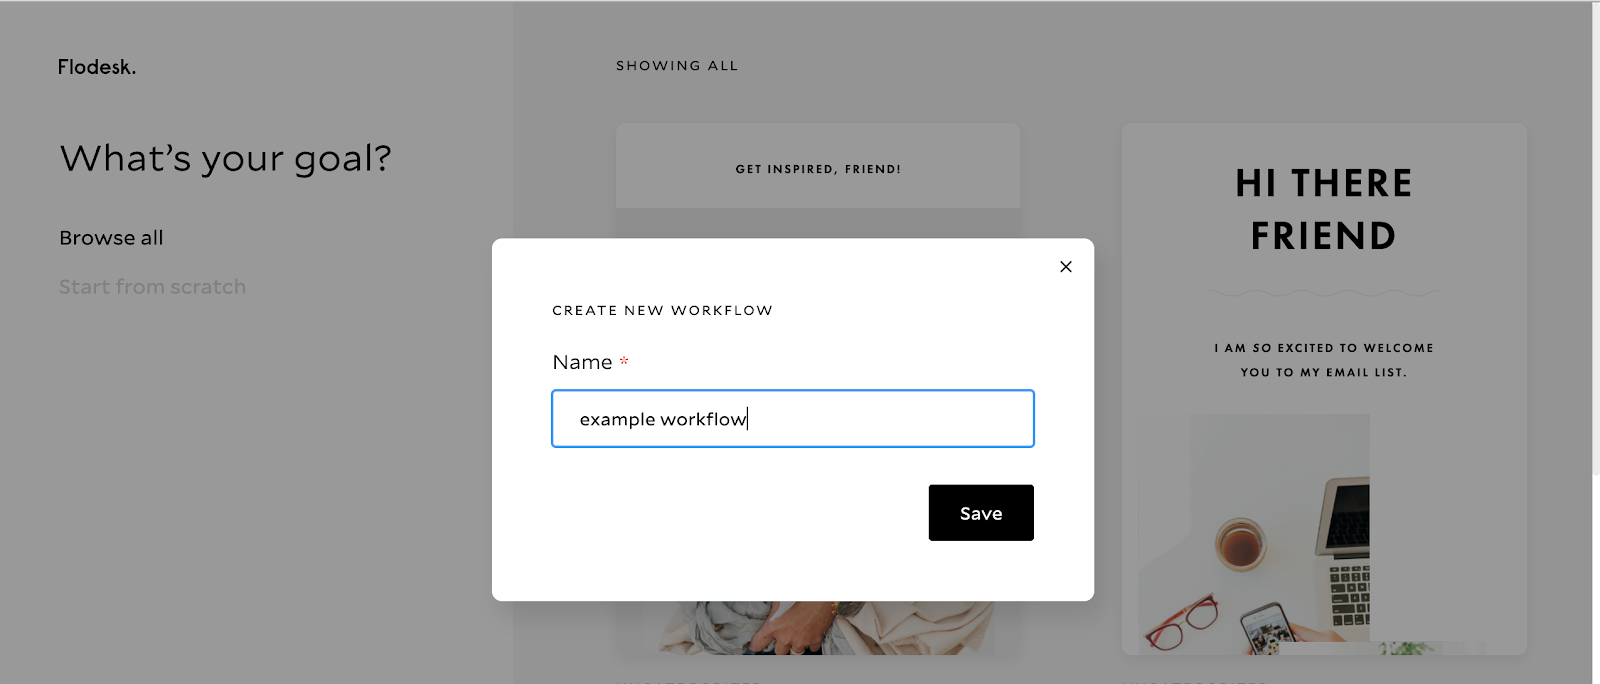 Naming your workflow in the pop-up, Flodesk